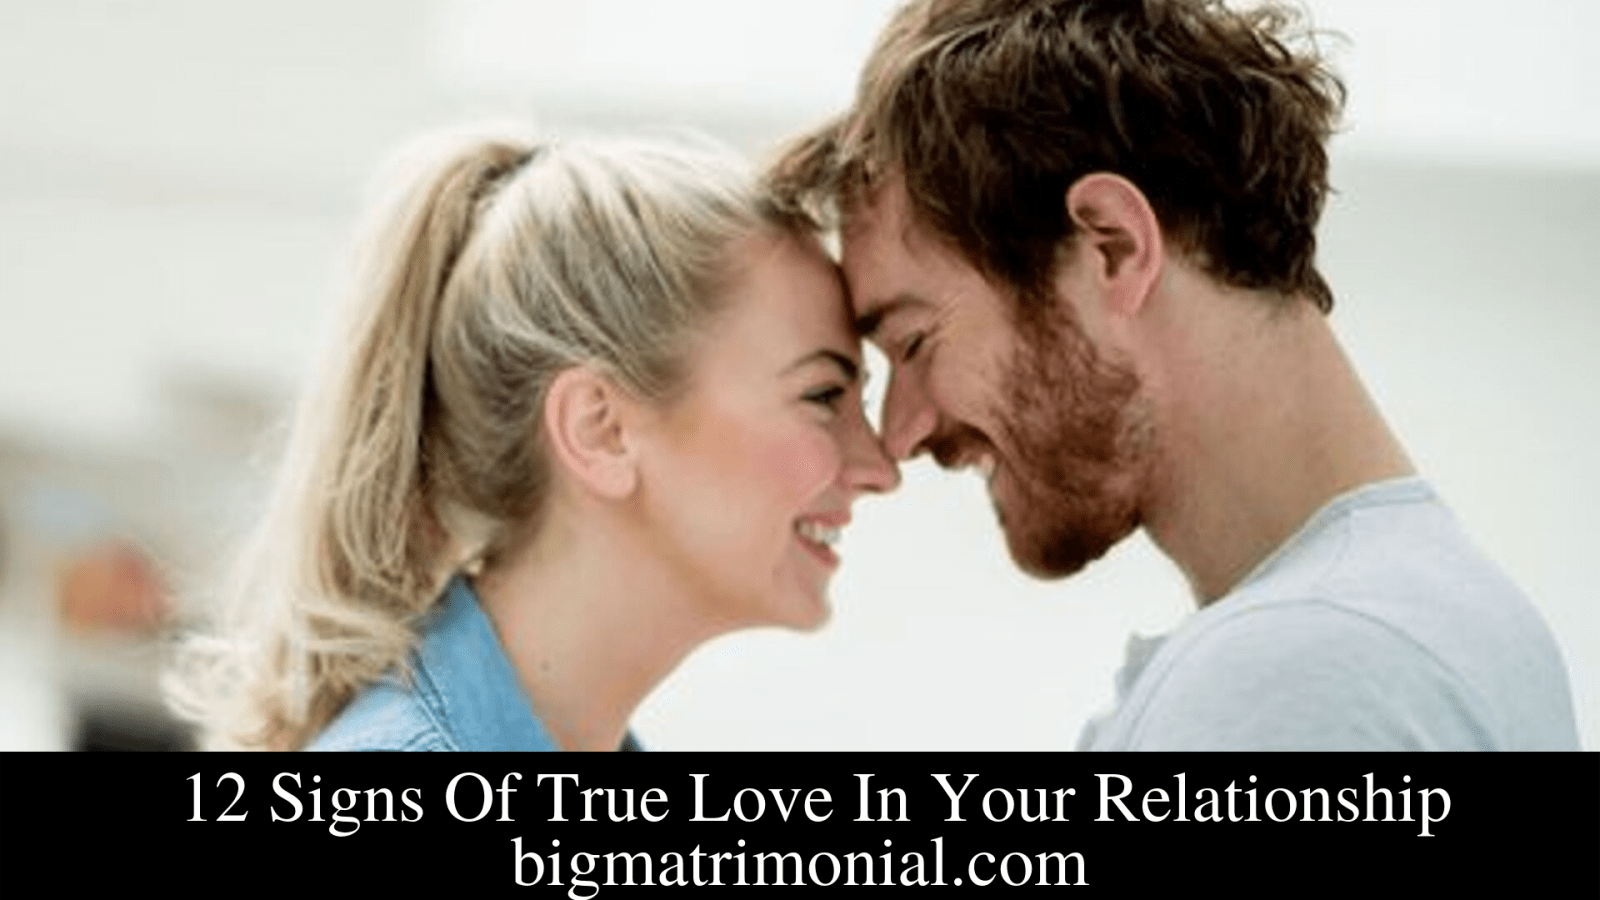 12 Signs Of True Love In Your Relationship